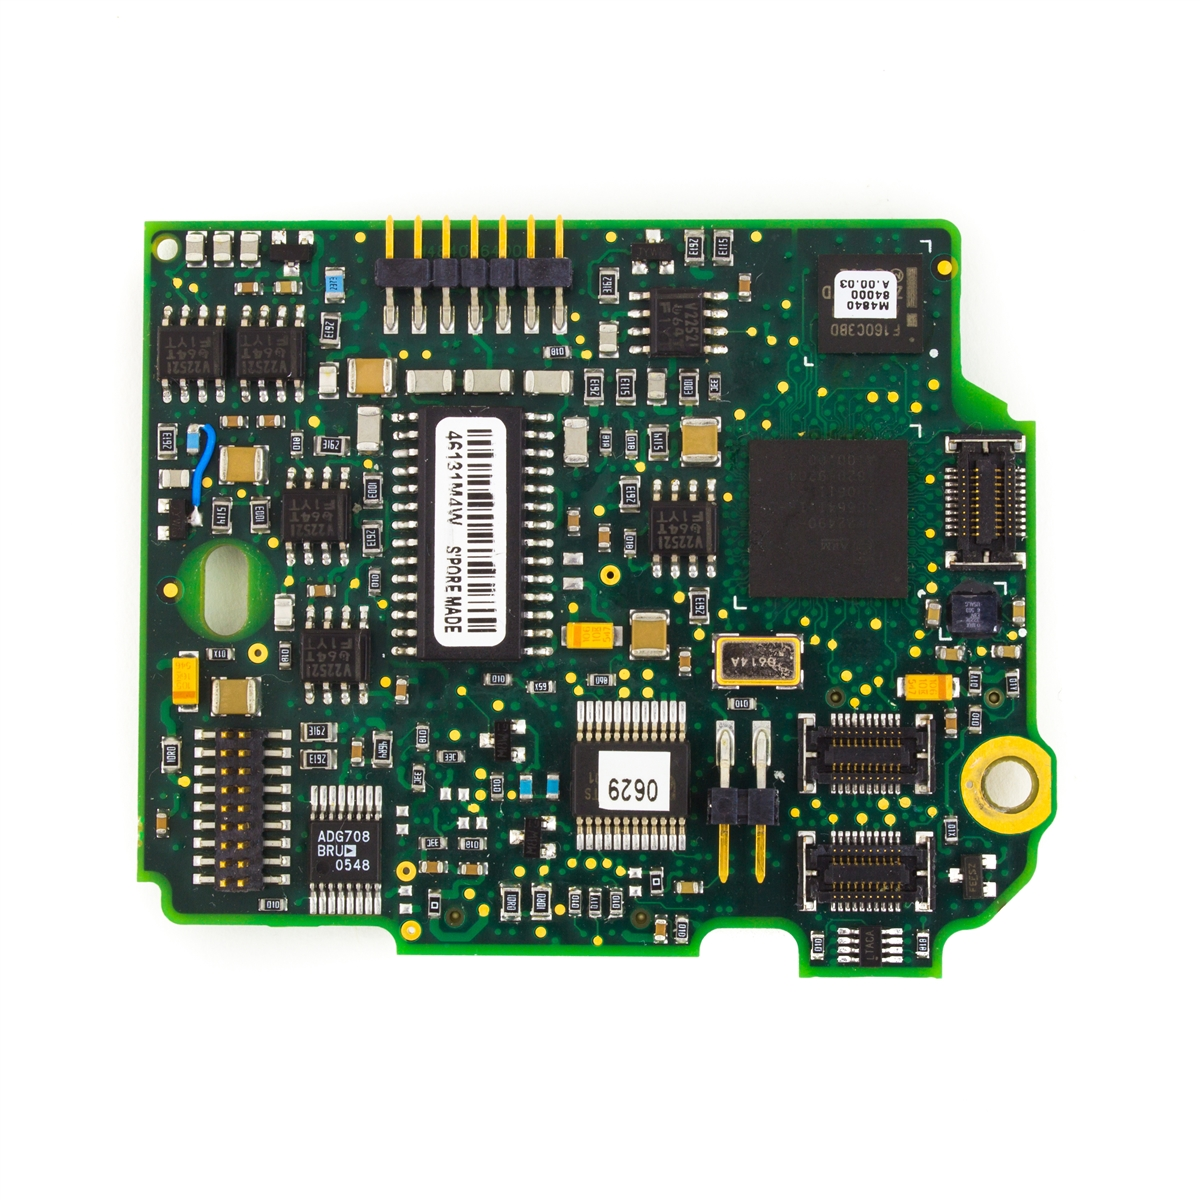 Philips IntelliVue M4841A TRx+ Telemetry Transmitter S01 S02 S03 ECG System Circuit Board PC Assembly